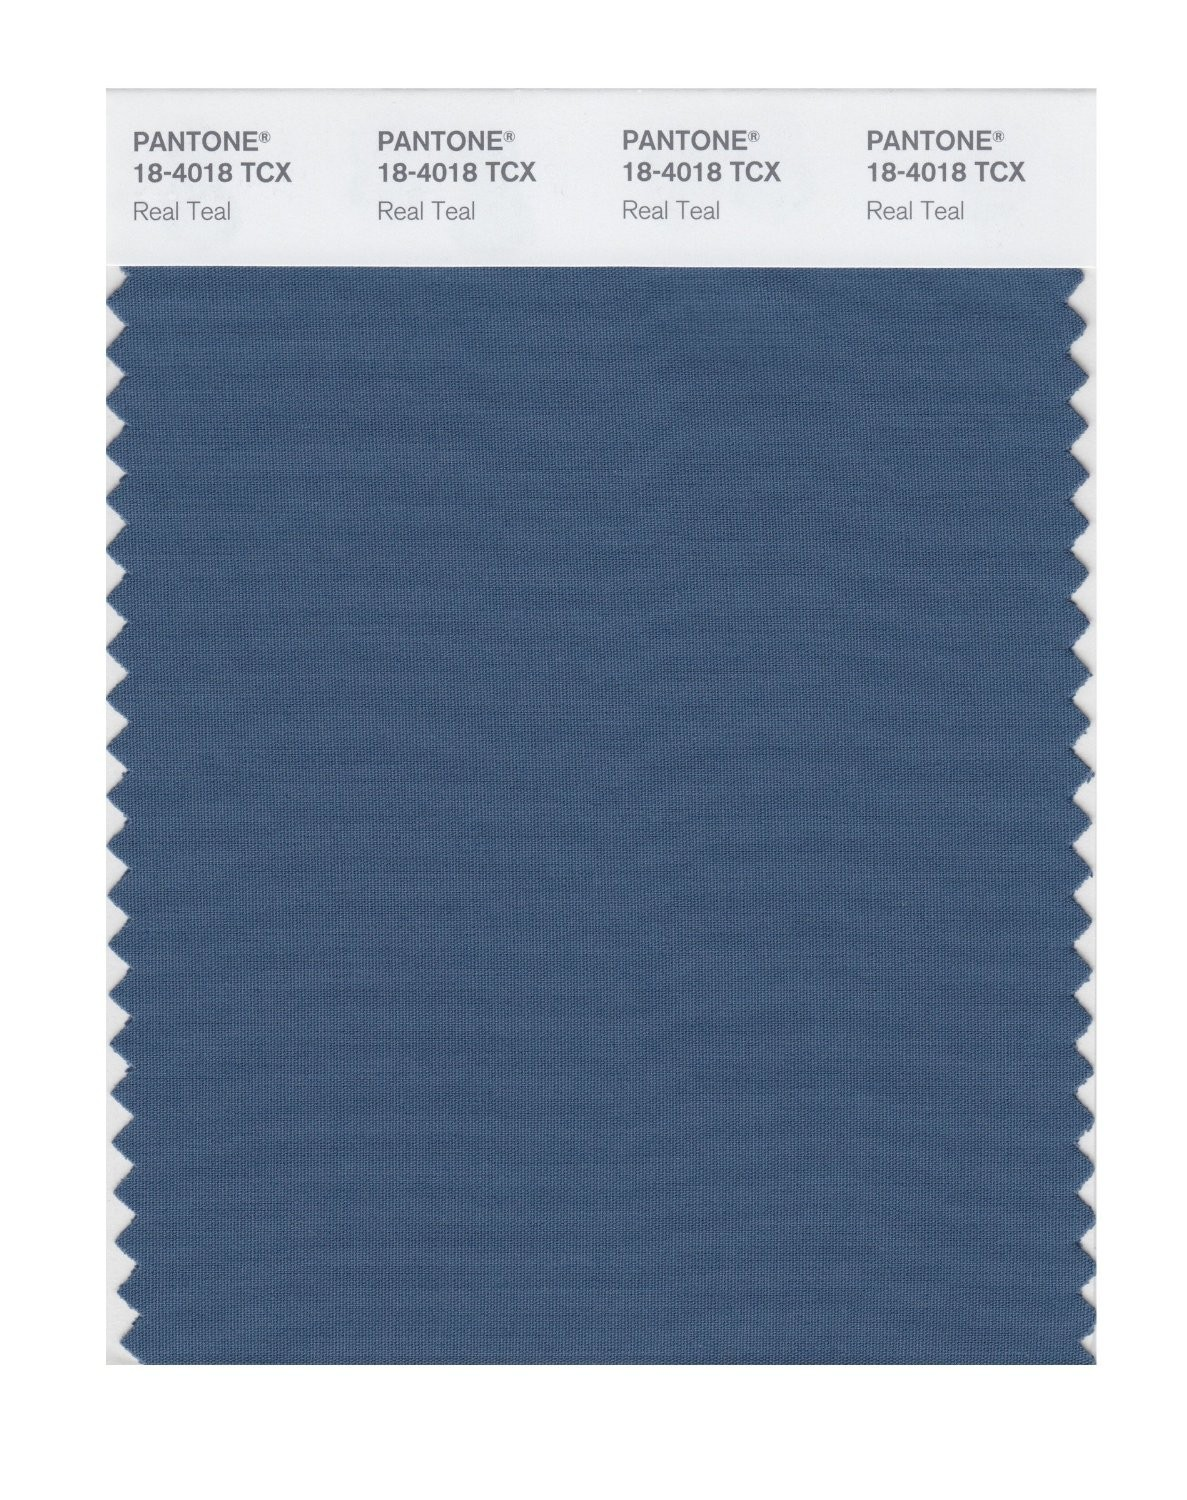 Pantone 18-4018 TCX Swatch Card Real Teal